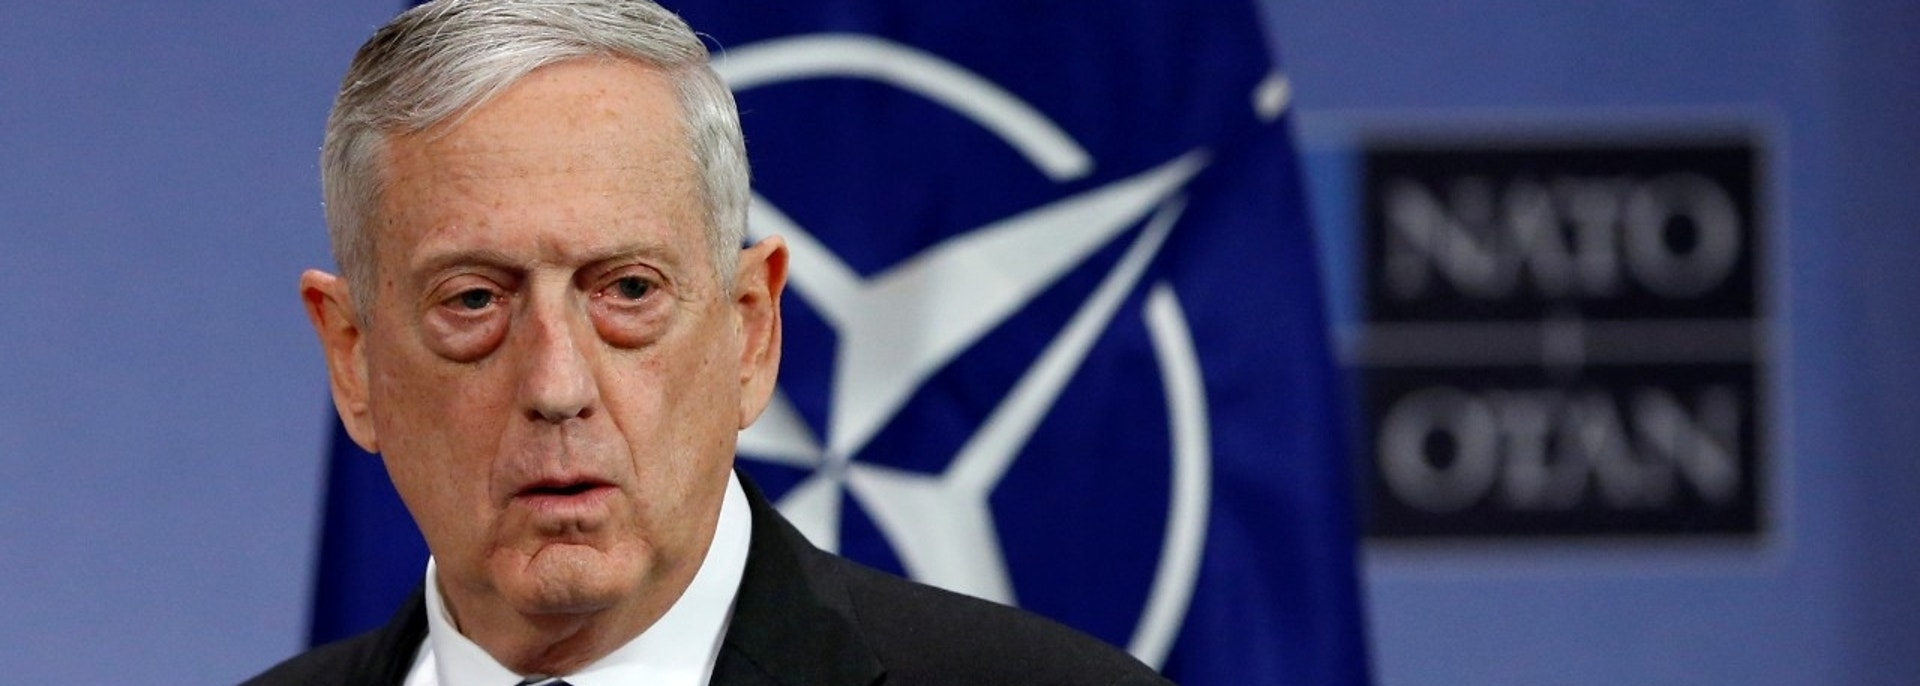 U.S. Secretary of Defence Jim Mattis addresses a news conference during a NATO defence ministers meeting at the Alliance headquarters in Brussels, Belgium, February 15, 2018. REUTERS/Francois Lenoir - RC11E611BC10